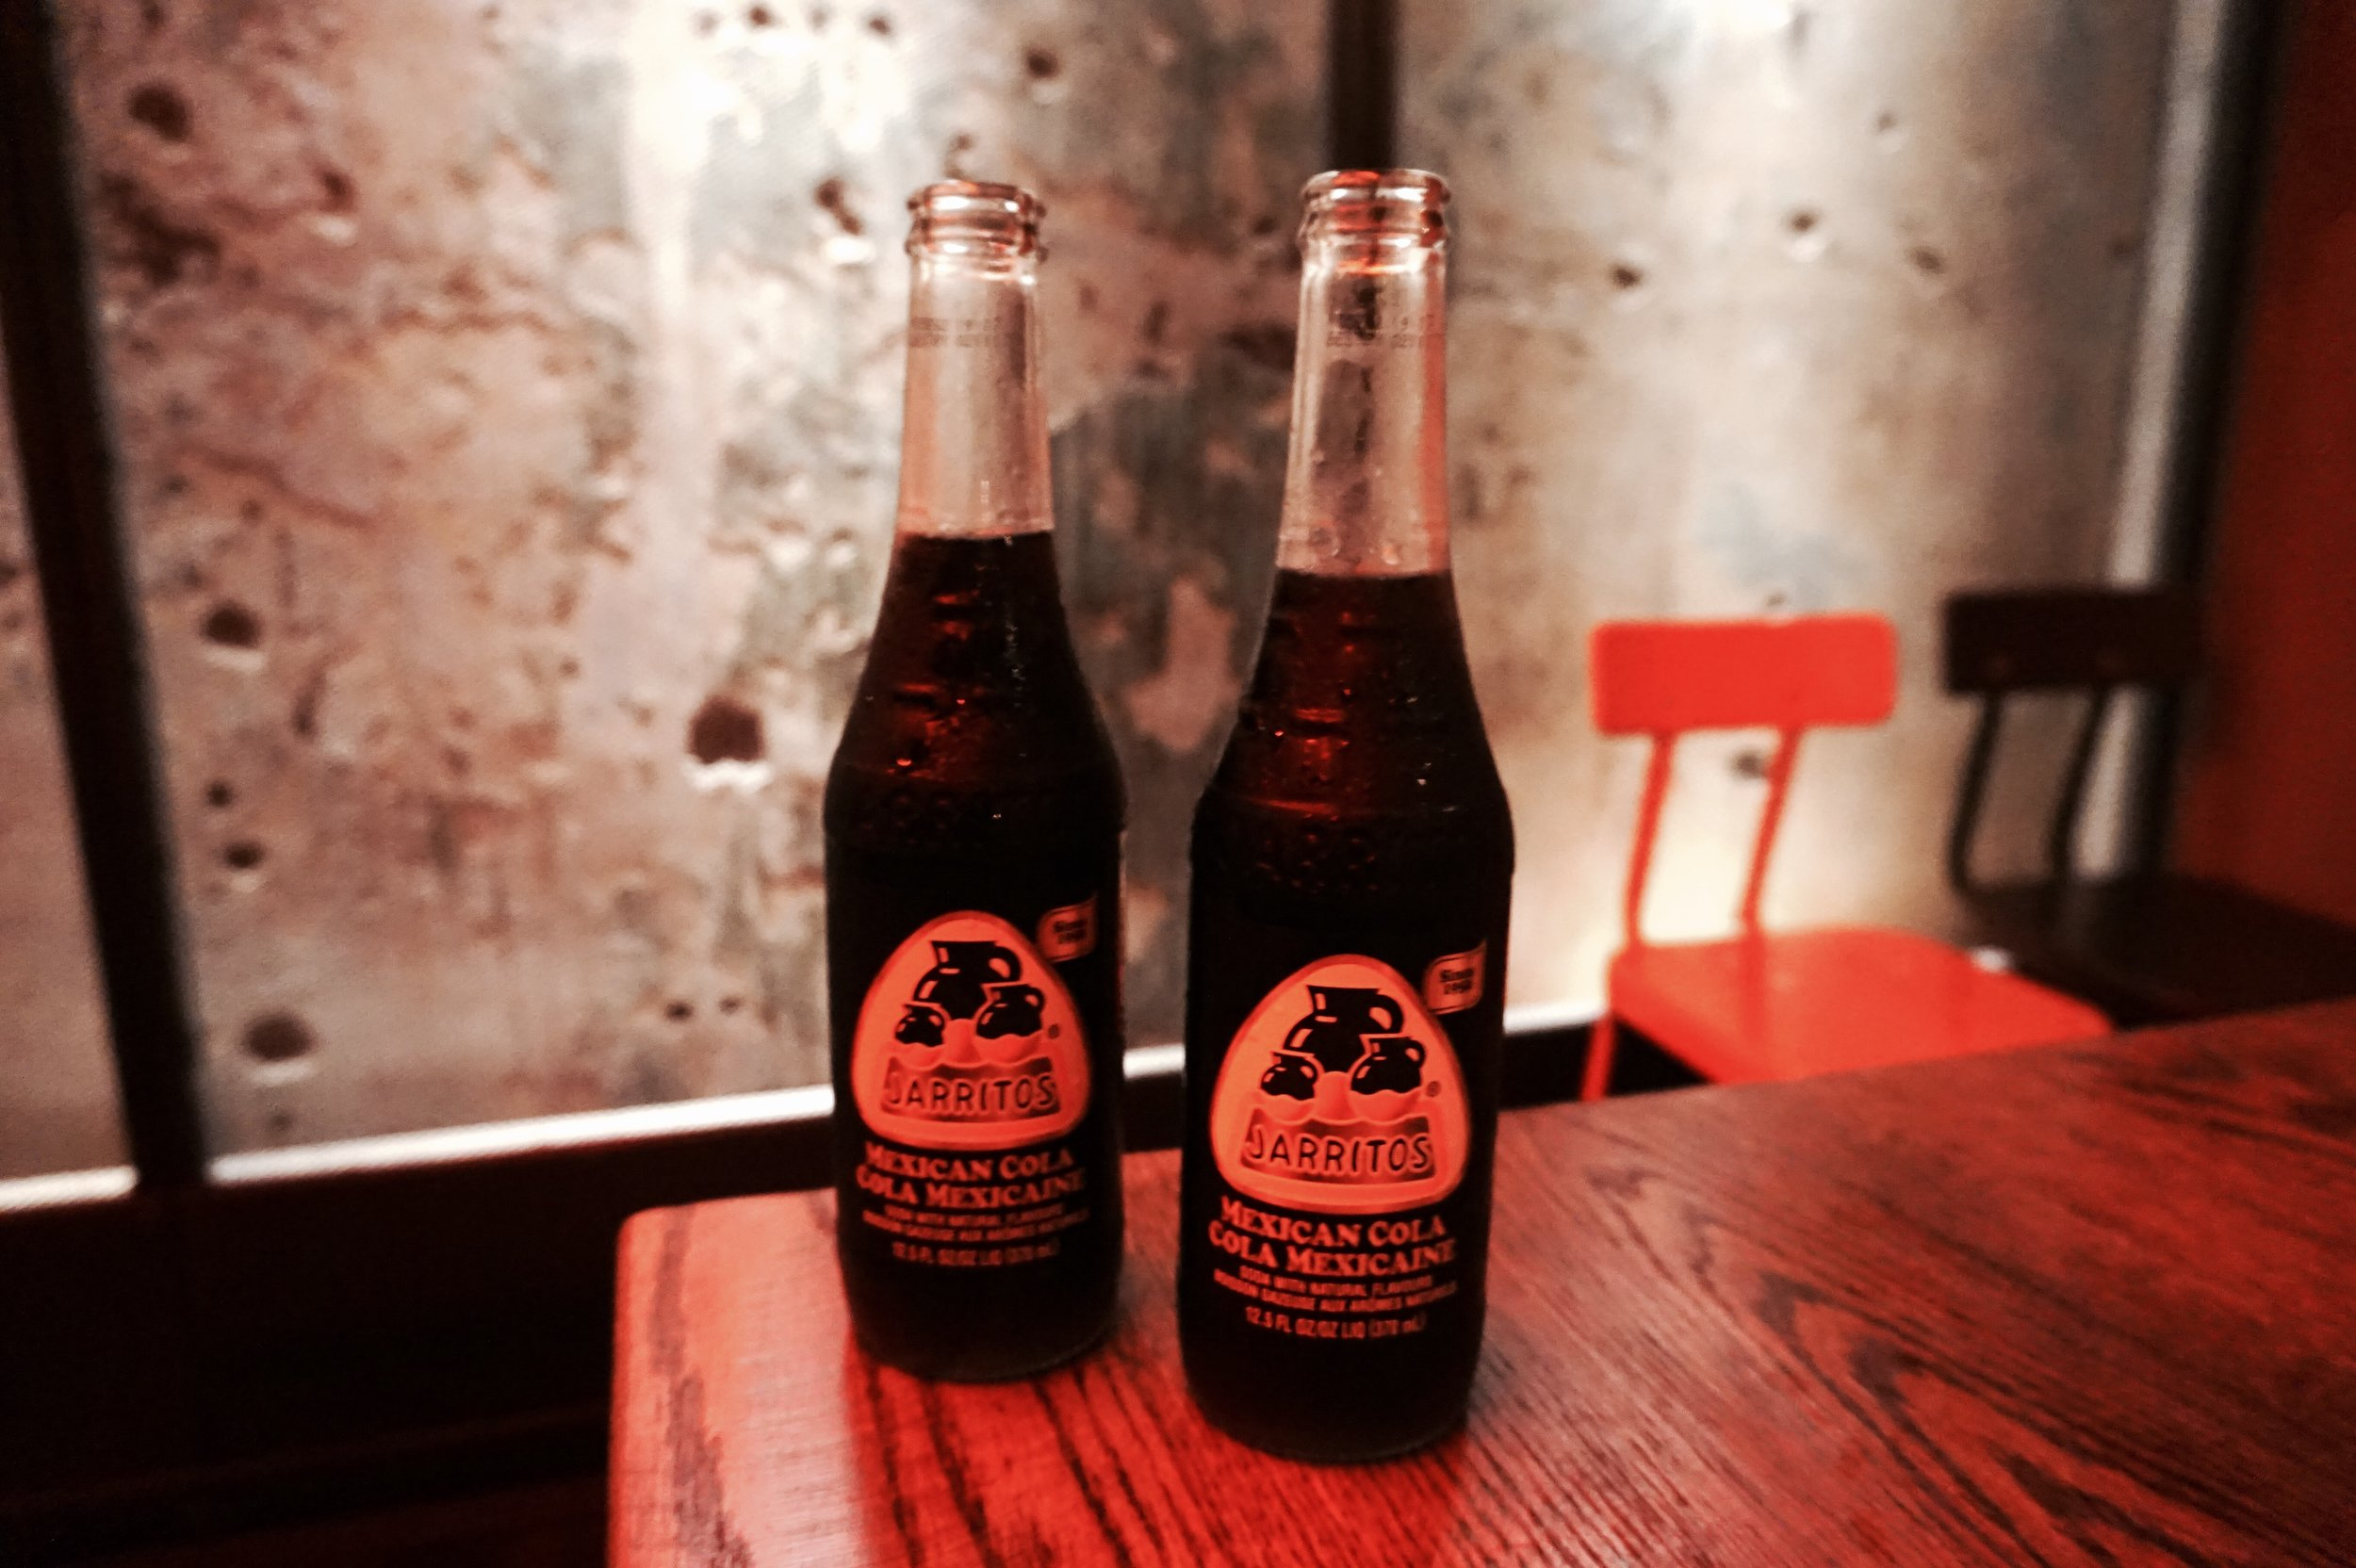 Jarritos, Mexican Colas.